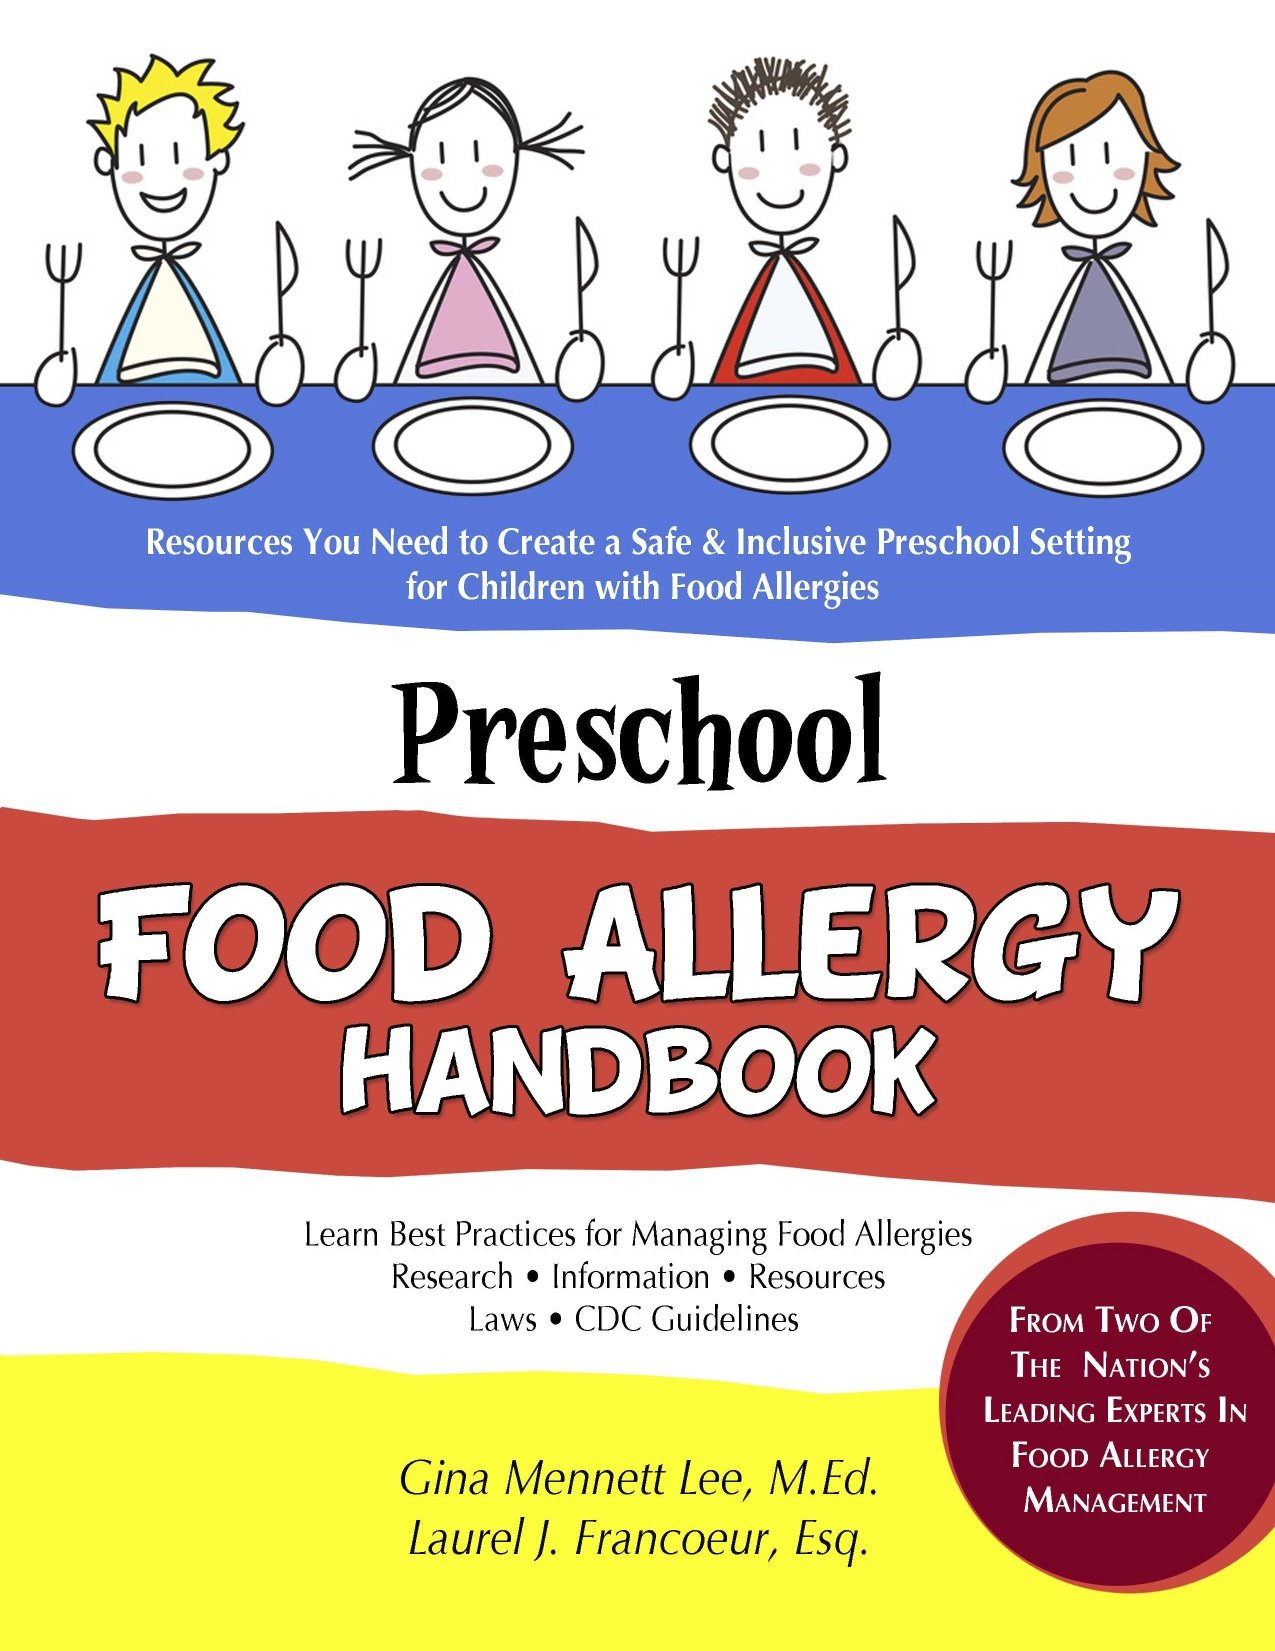 Preschool Food Allergy Handbook